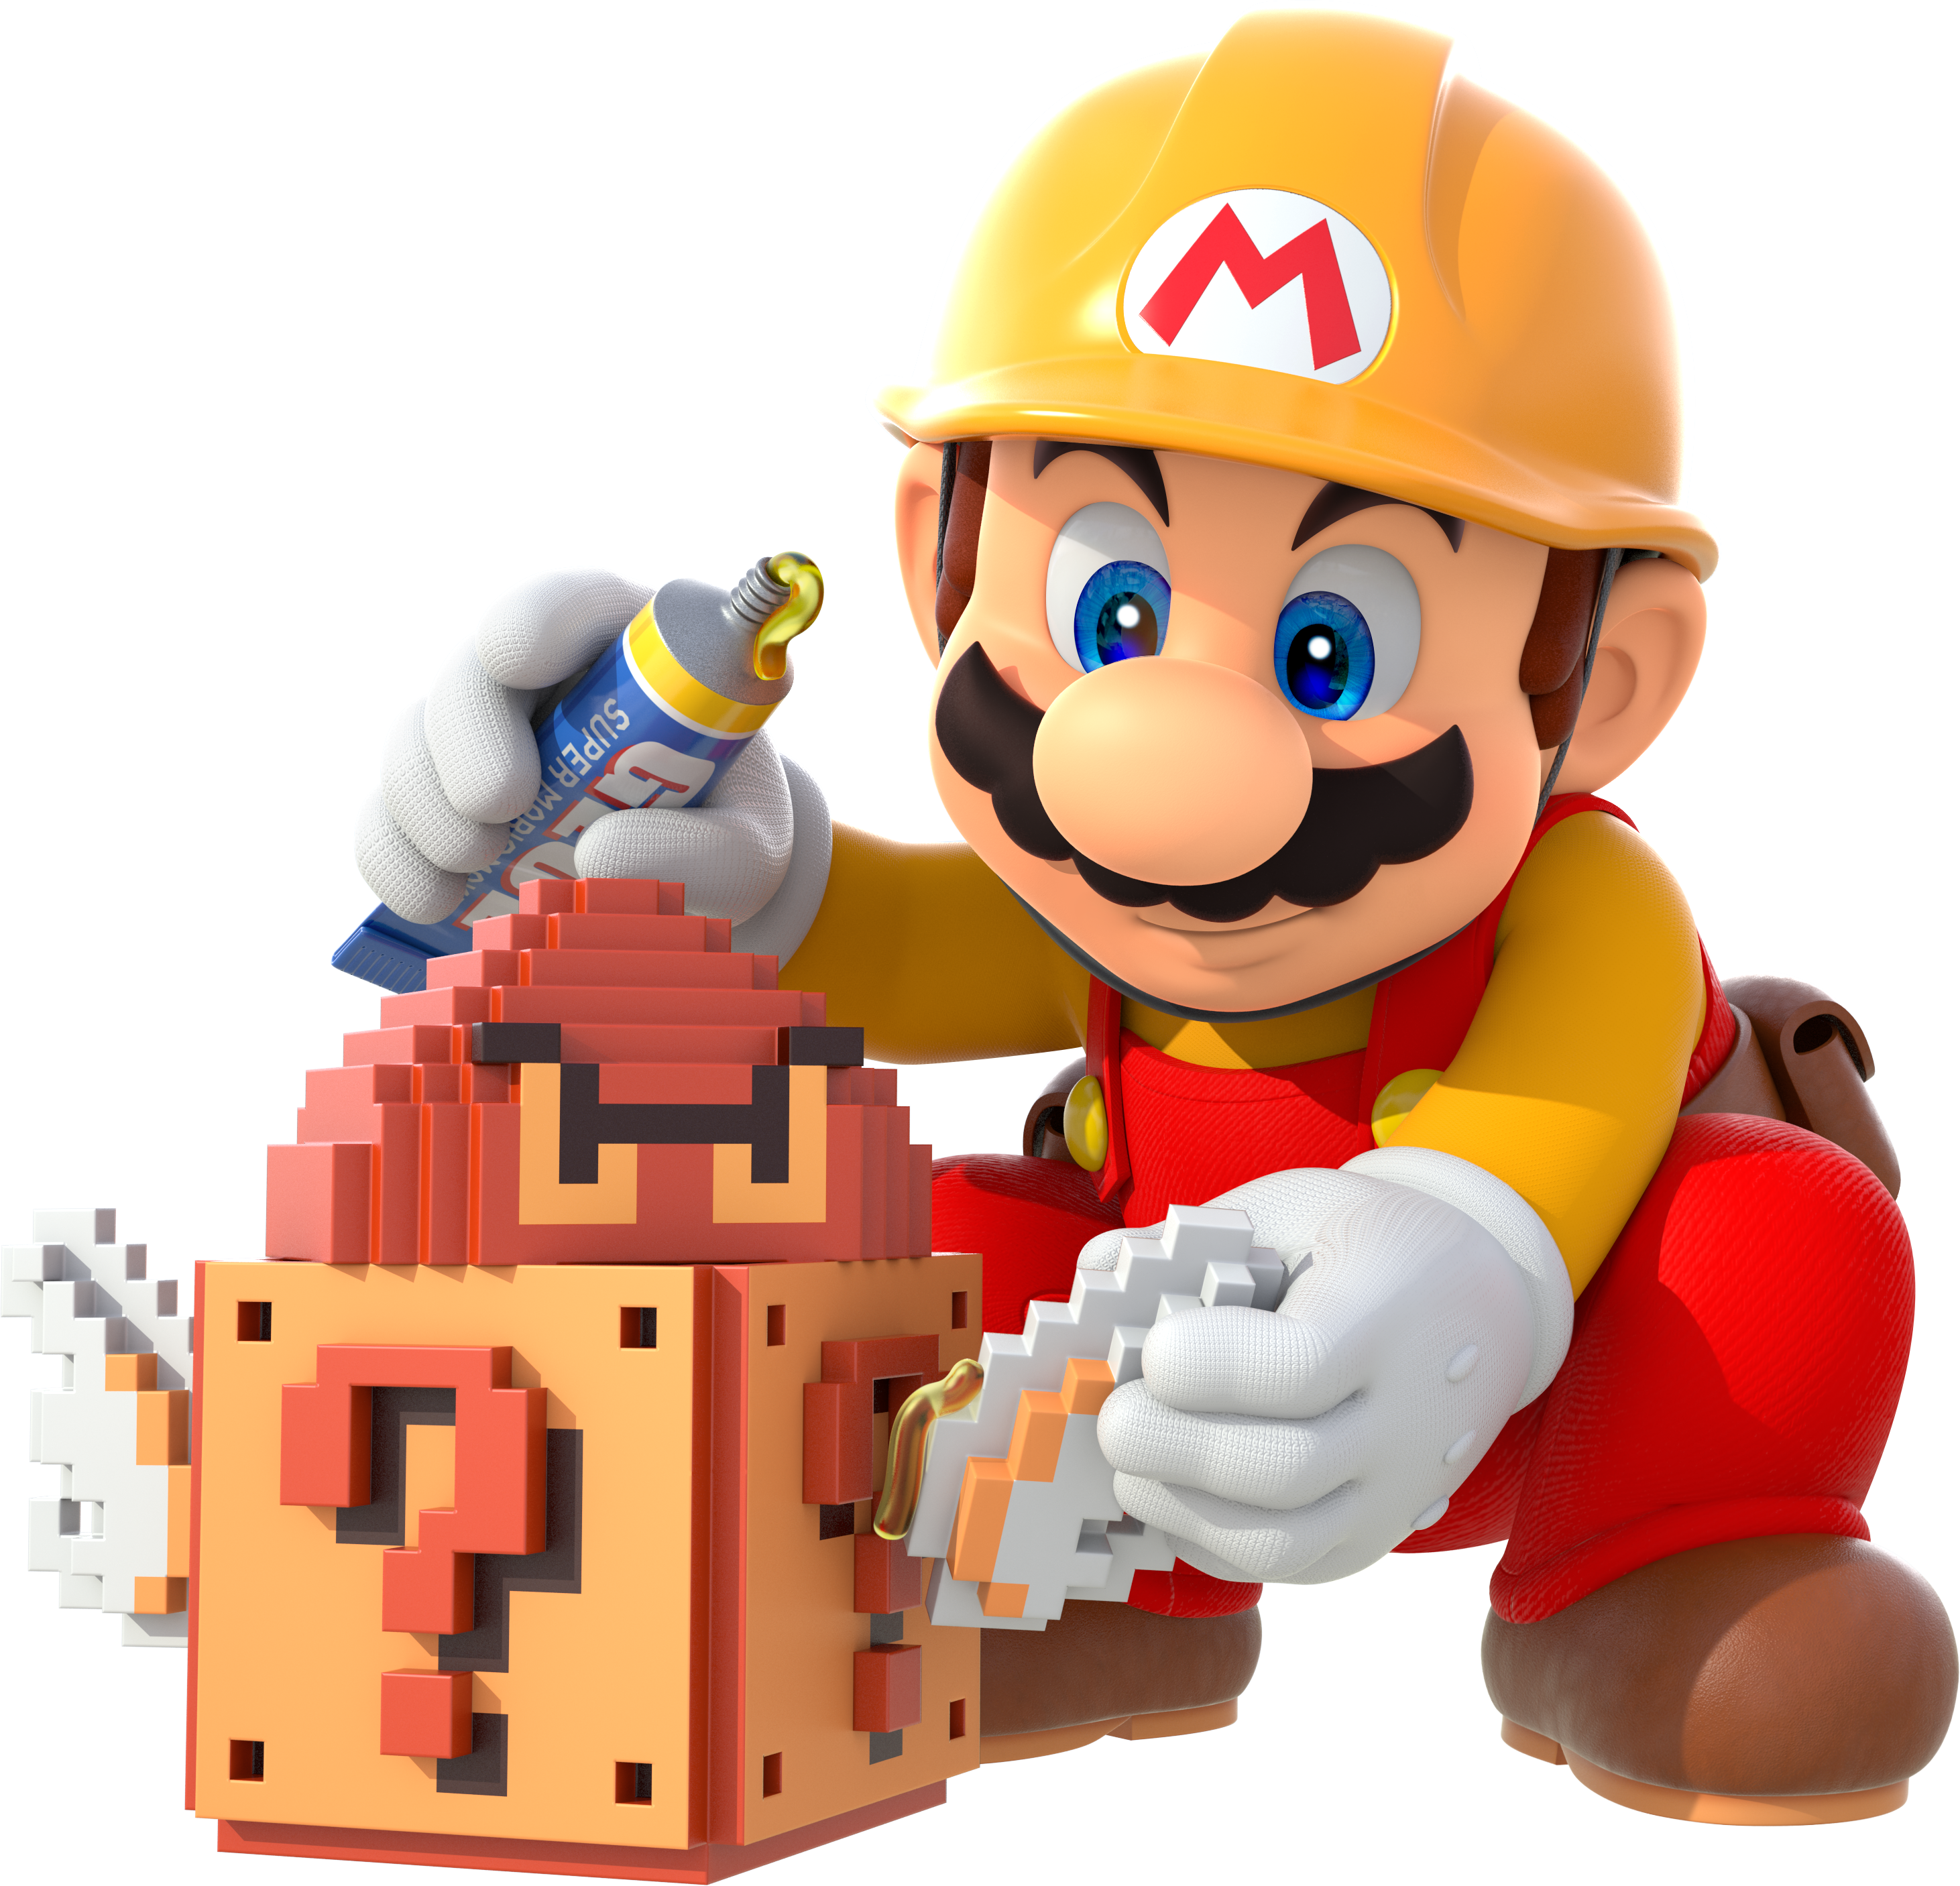 Super Mario Maker - Mario Artwork 01 v2